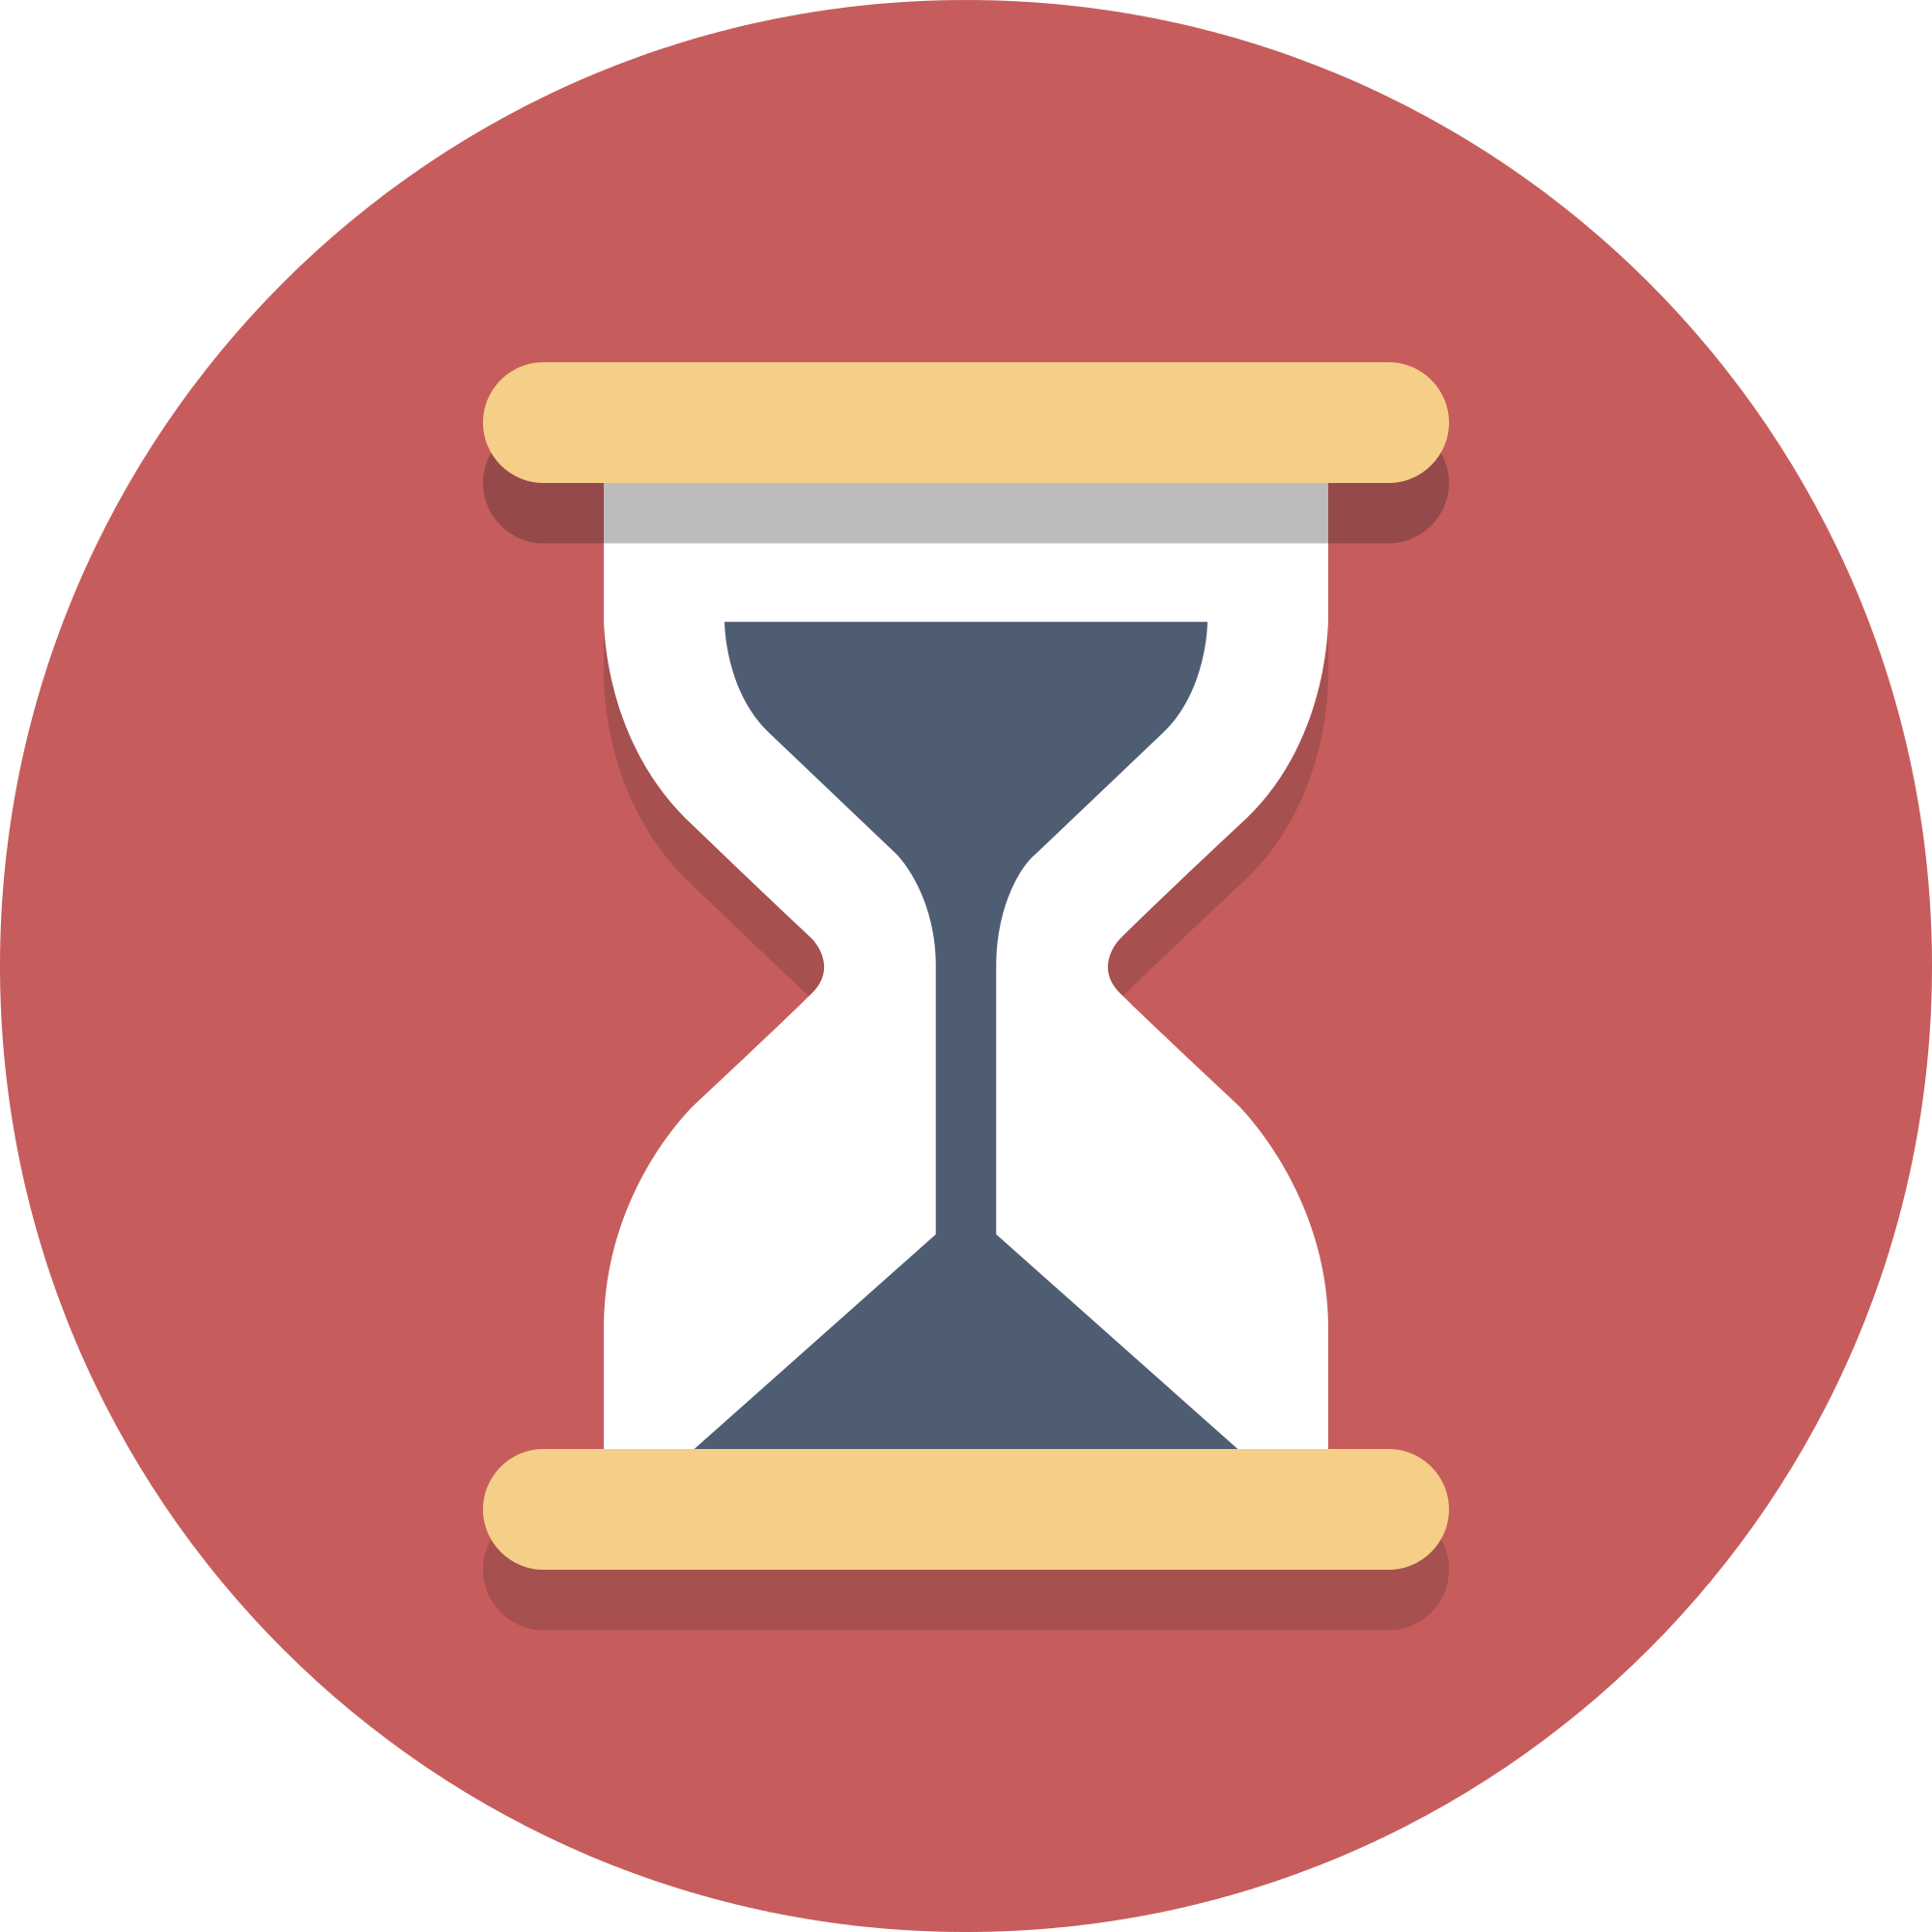 Hourglass svg #9, Download drawings